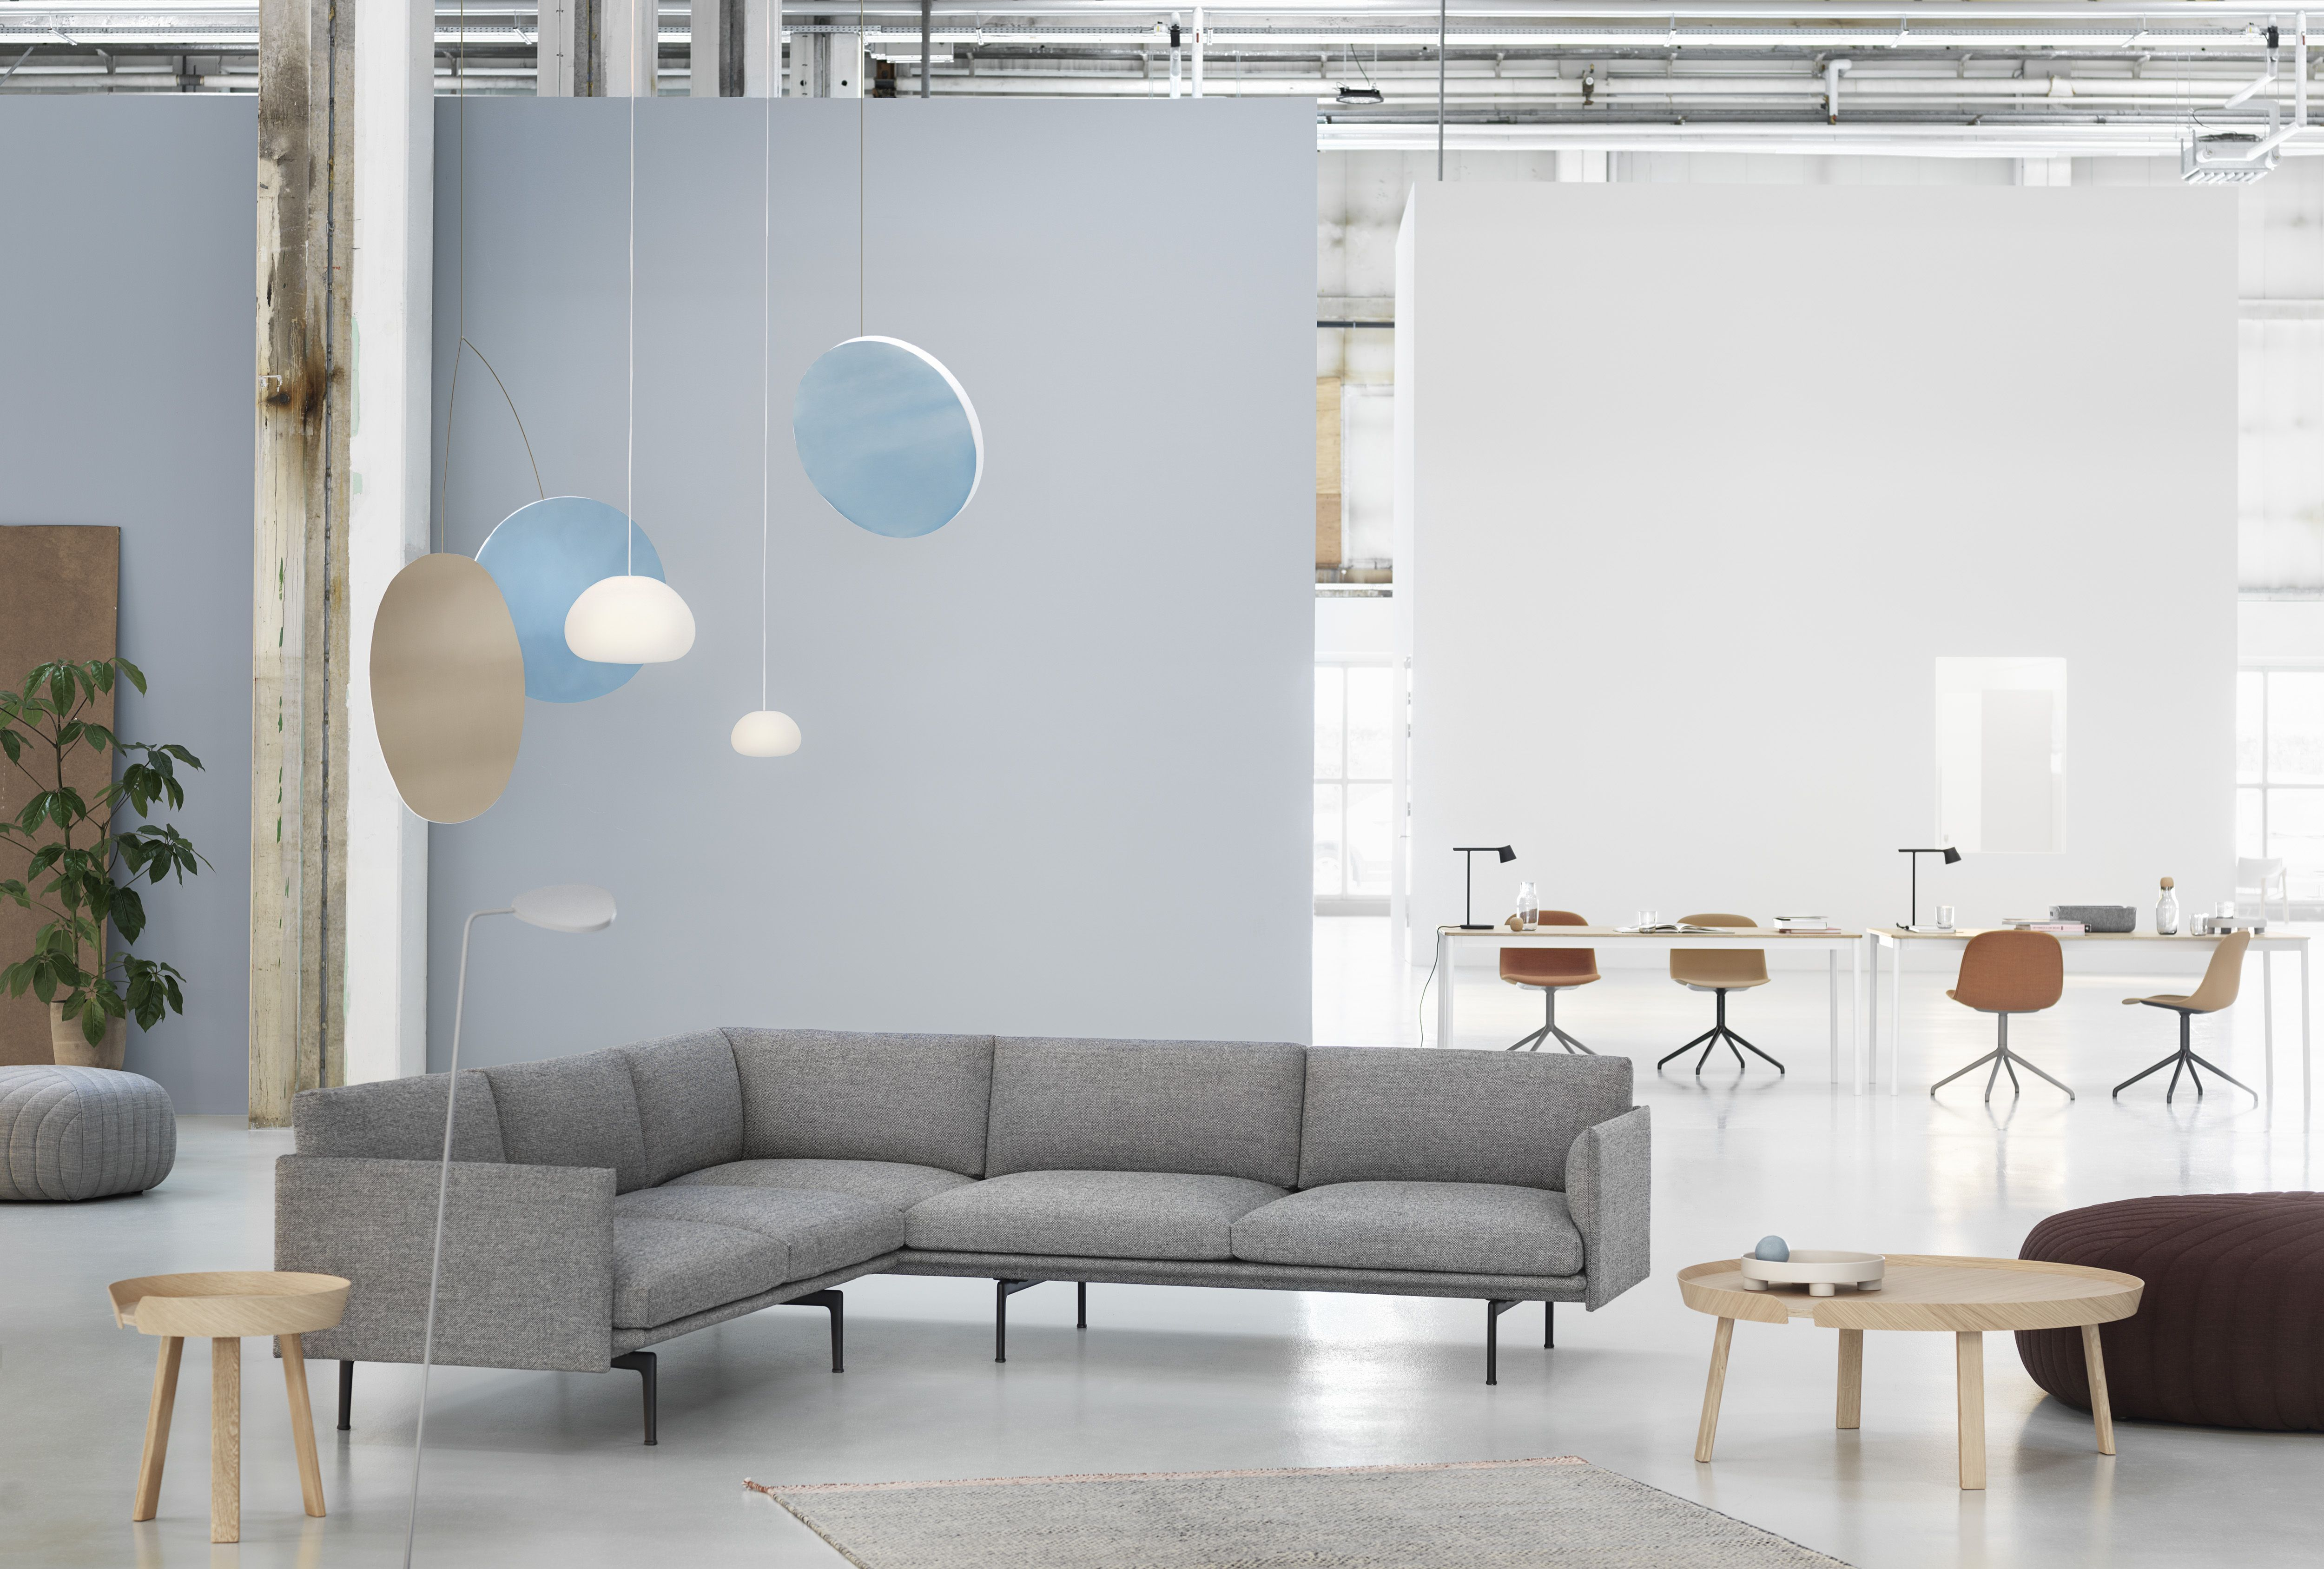 Embodying The Design Language Of The Outline Sofa Series Is The Outline Corner Sofa An A Living Spaces Sofa Muuto Furniture Scandinavian Sofa Design